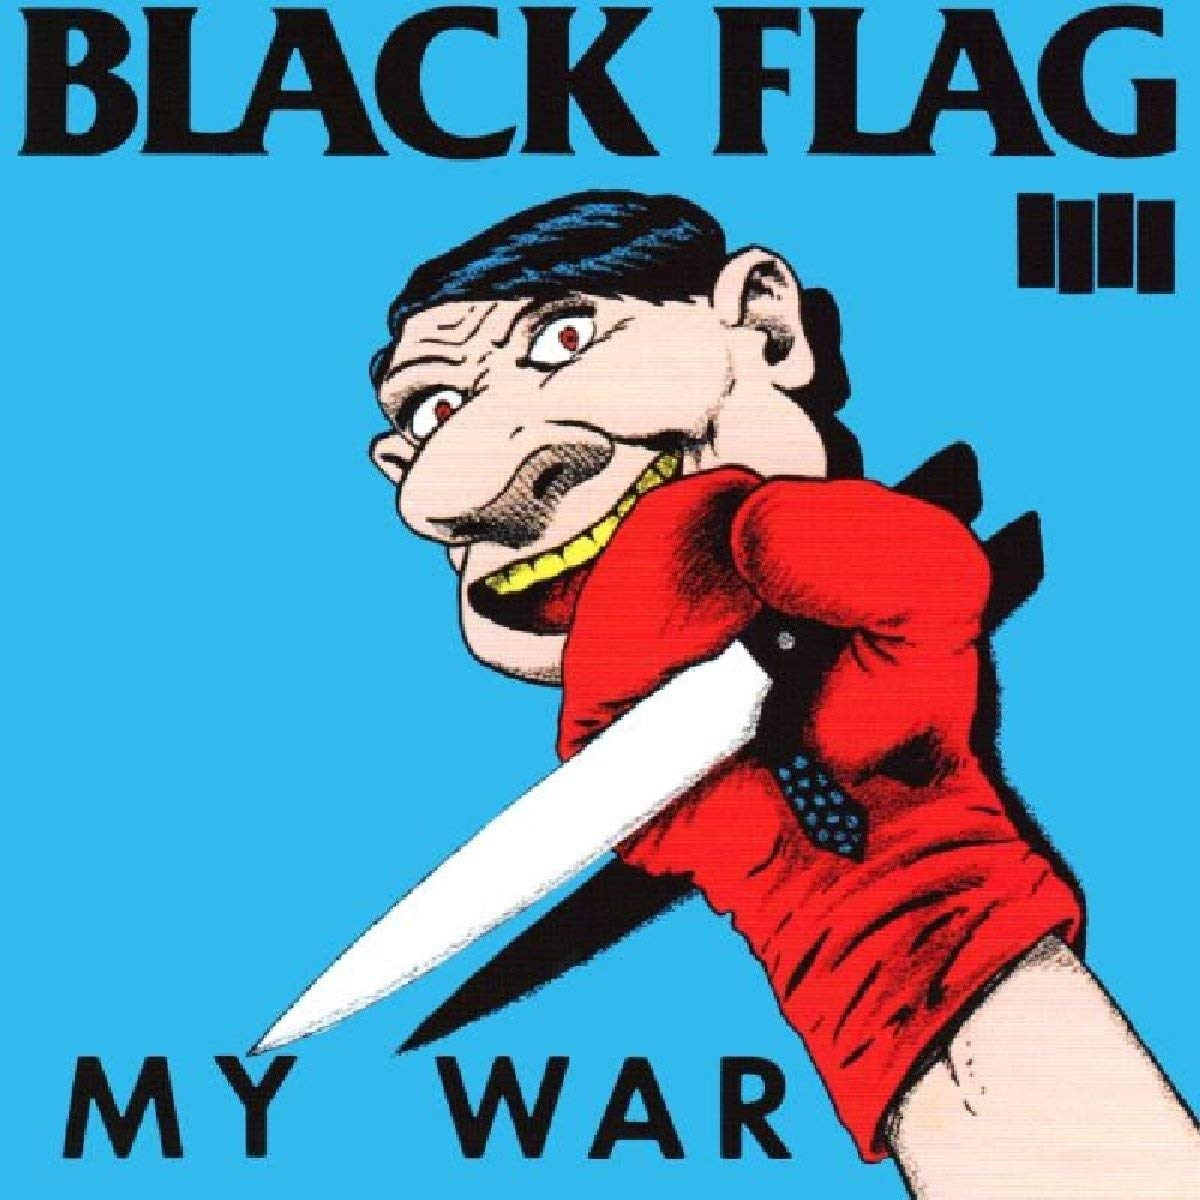 Black Flag Band Wallpapers Top Free Black Flag Band Backgrounds Wallpaperaccess